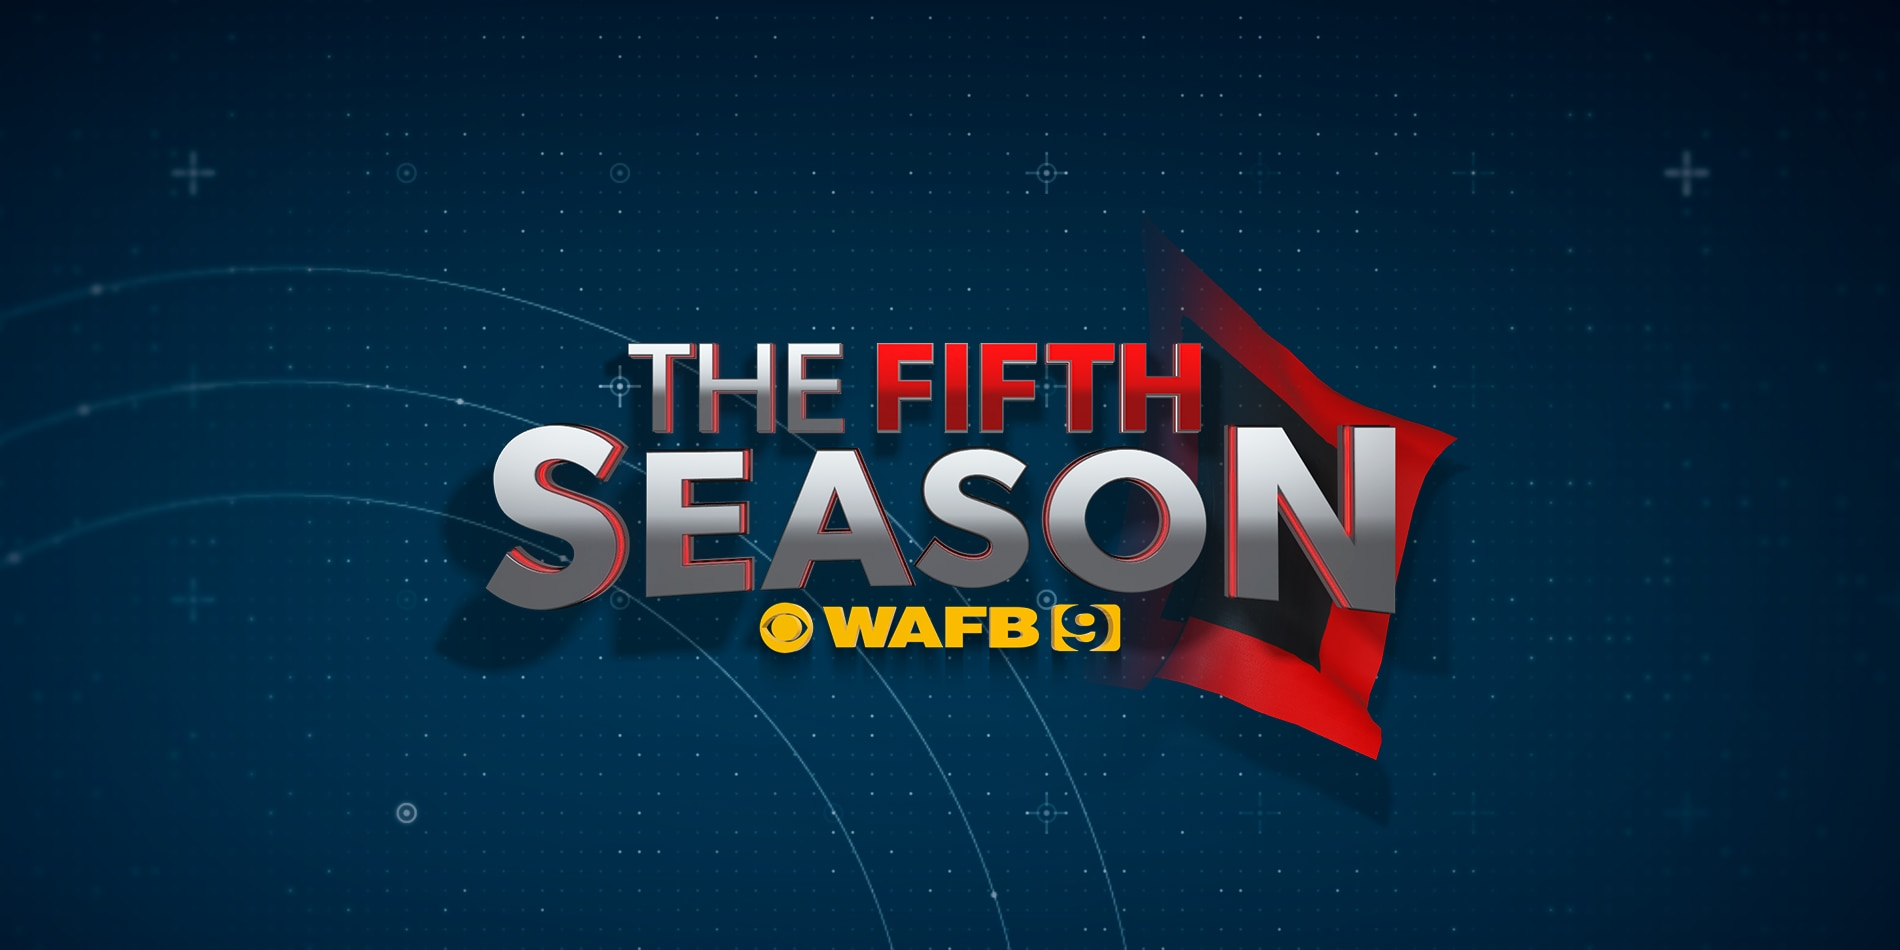 The 5th Season: WAFB hurricane special airs on Thursday, May 30